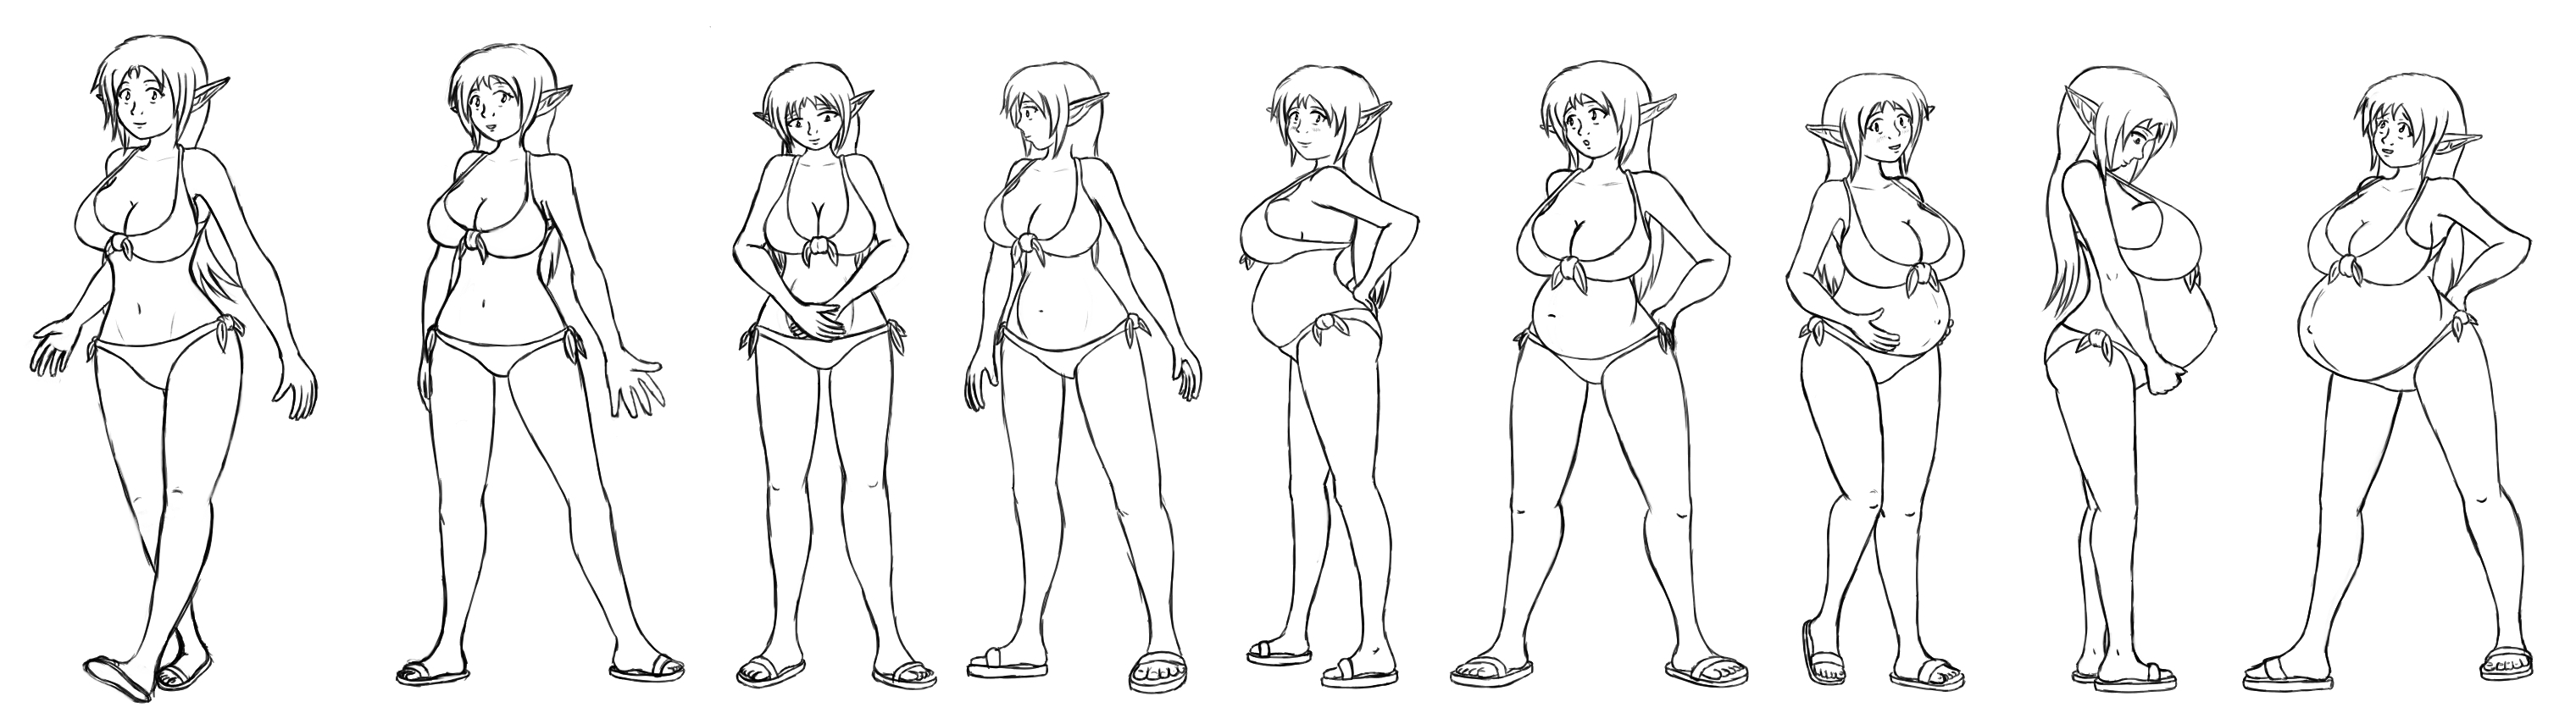 Faunas size chart by himitsudragon on deviantart seras excellent adventure by hidonredux nvjuhfo Image collections